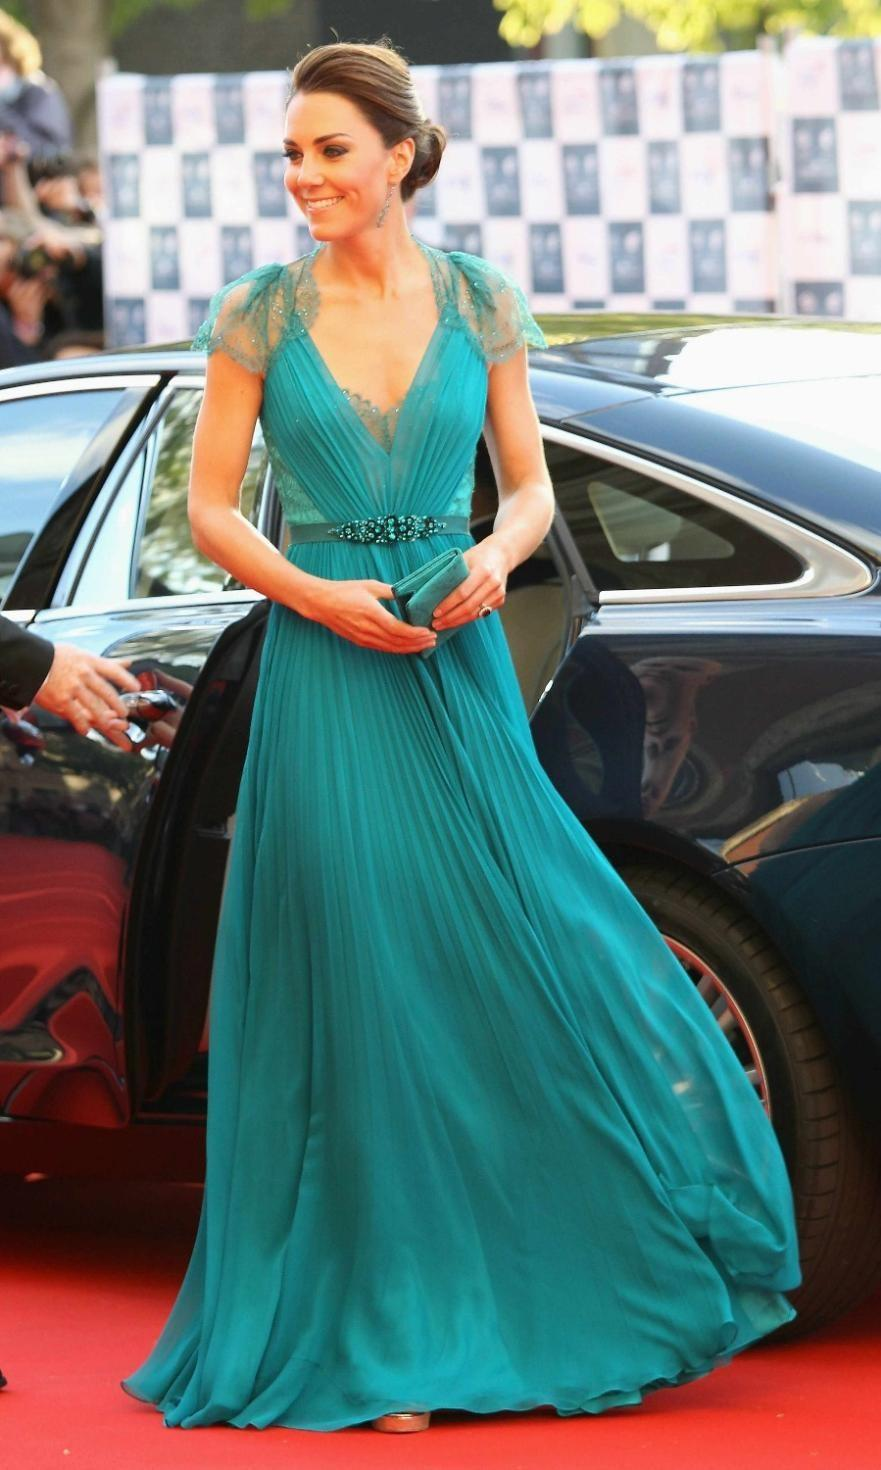 2018 Sexy V Neck Cap Sleeves Kate Middleton Jenny Packham Green Lace Evening Dresses Celebrity Red Carpet Dresses